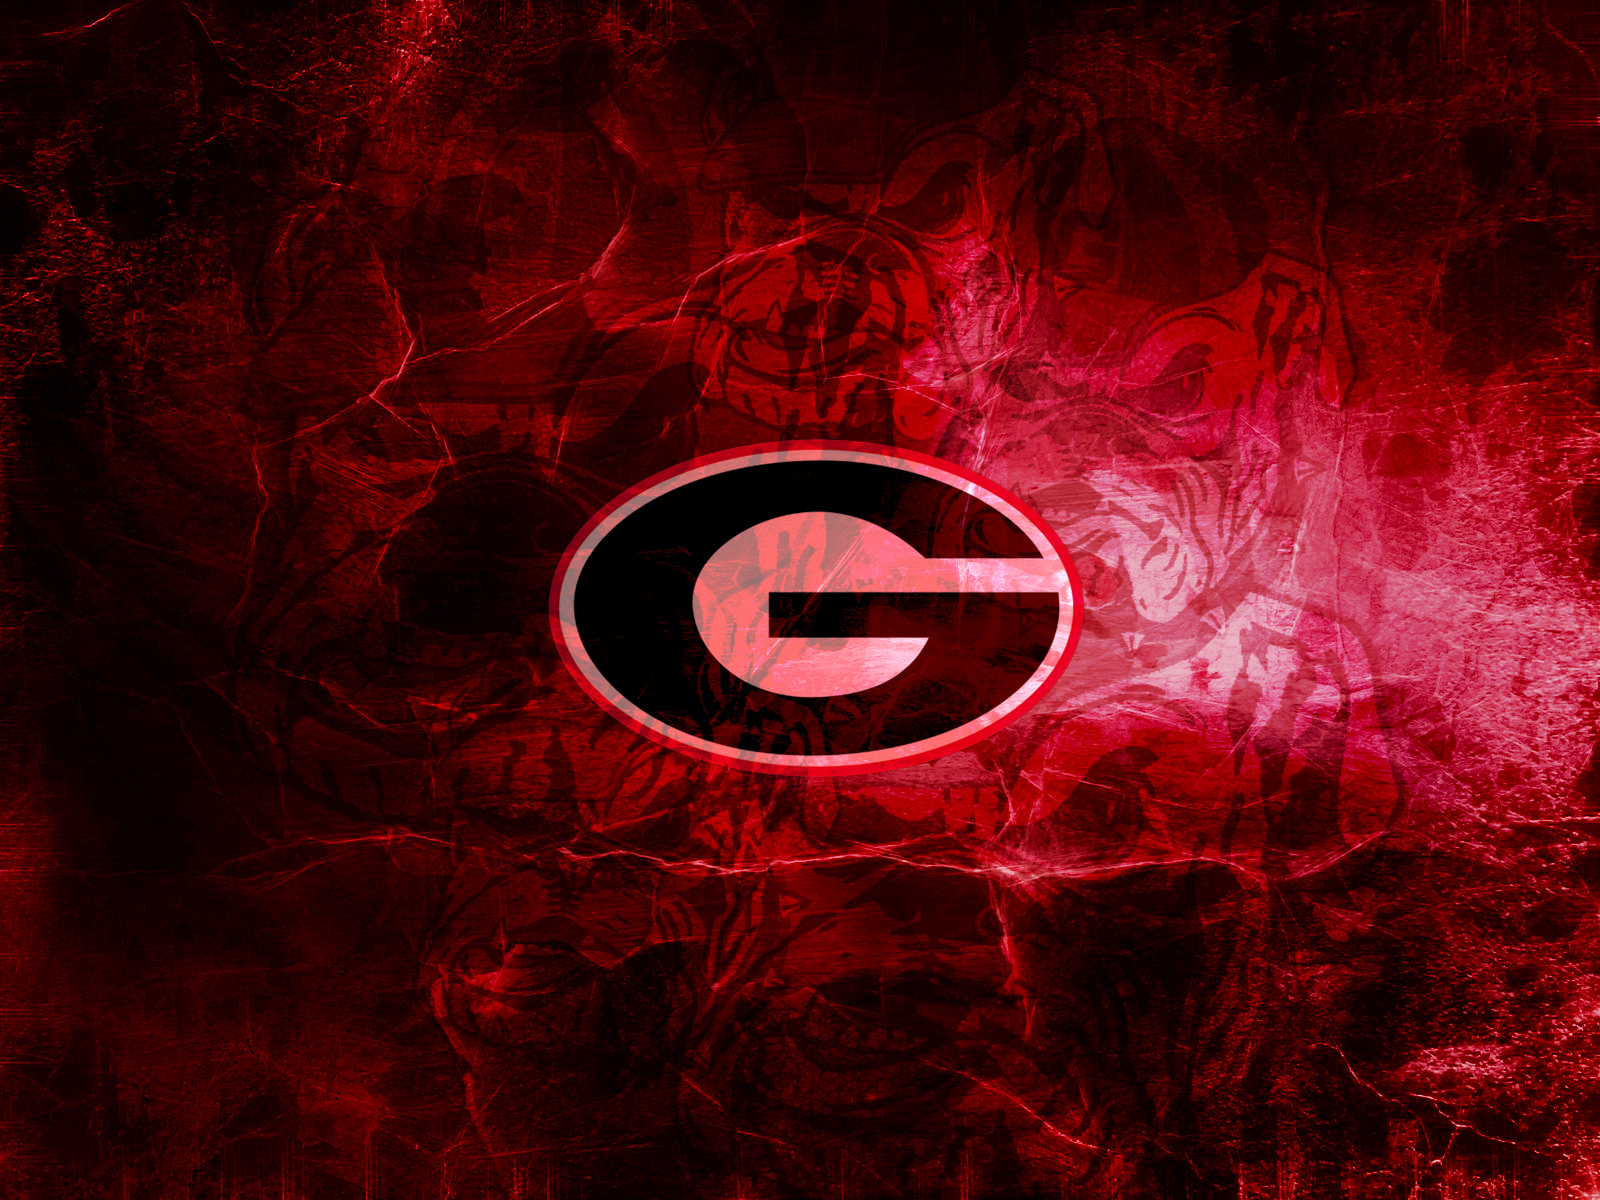 Hd Wallpapers Georgia Bulldogs 640 X 960 31 Kb Jpeg HD Wallpapers 1600x1200